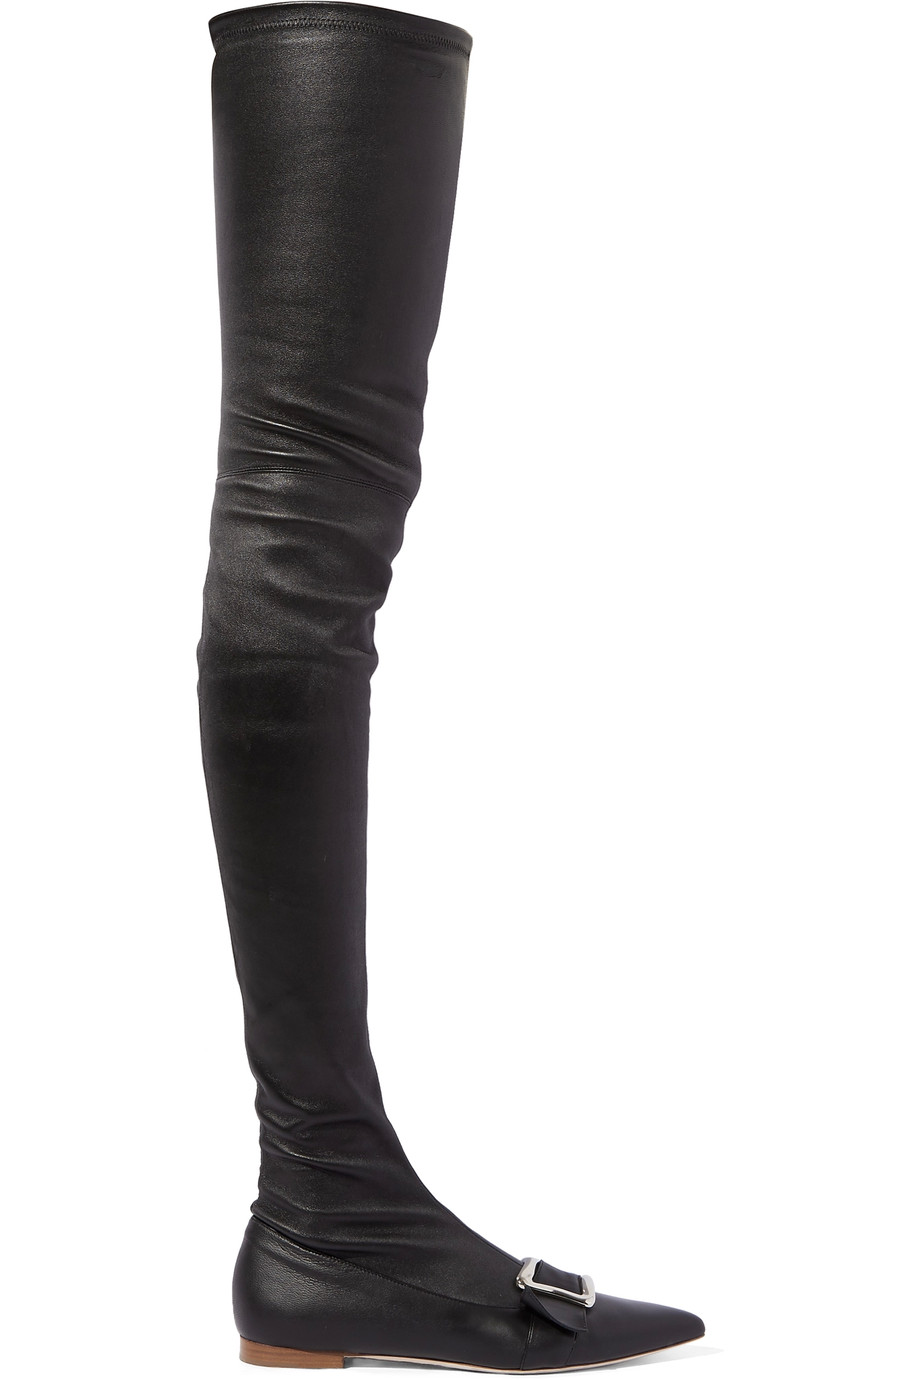 MALONE SOULIERS + Adam Lippes Emma Buckled Leather Over-The-Knee Boots